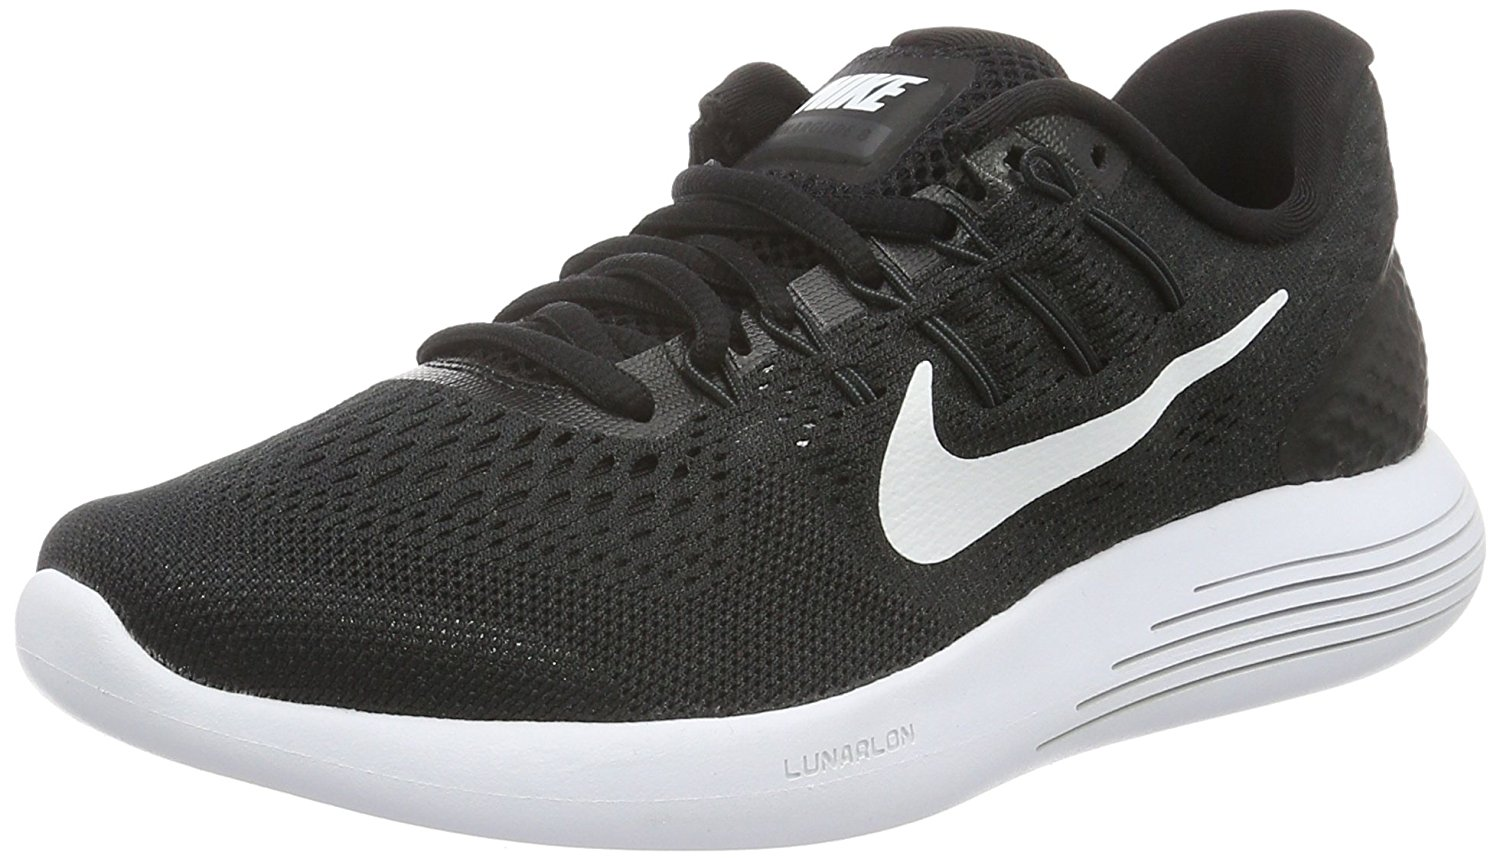 Nike Running Shoes   Nike Sneakers Online at Best Prices ... efd9af6036